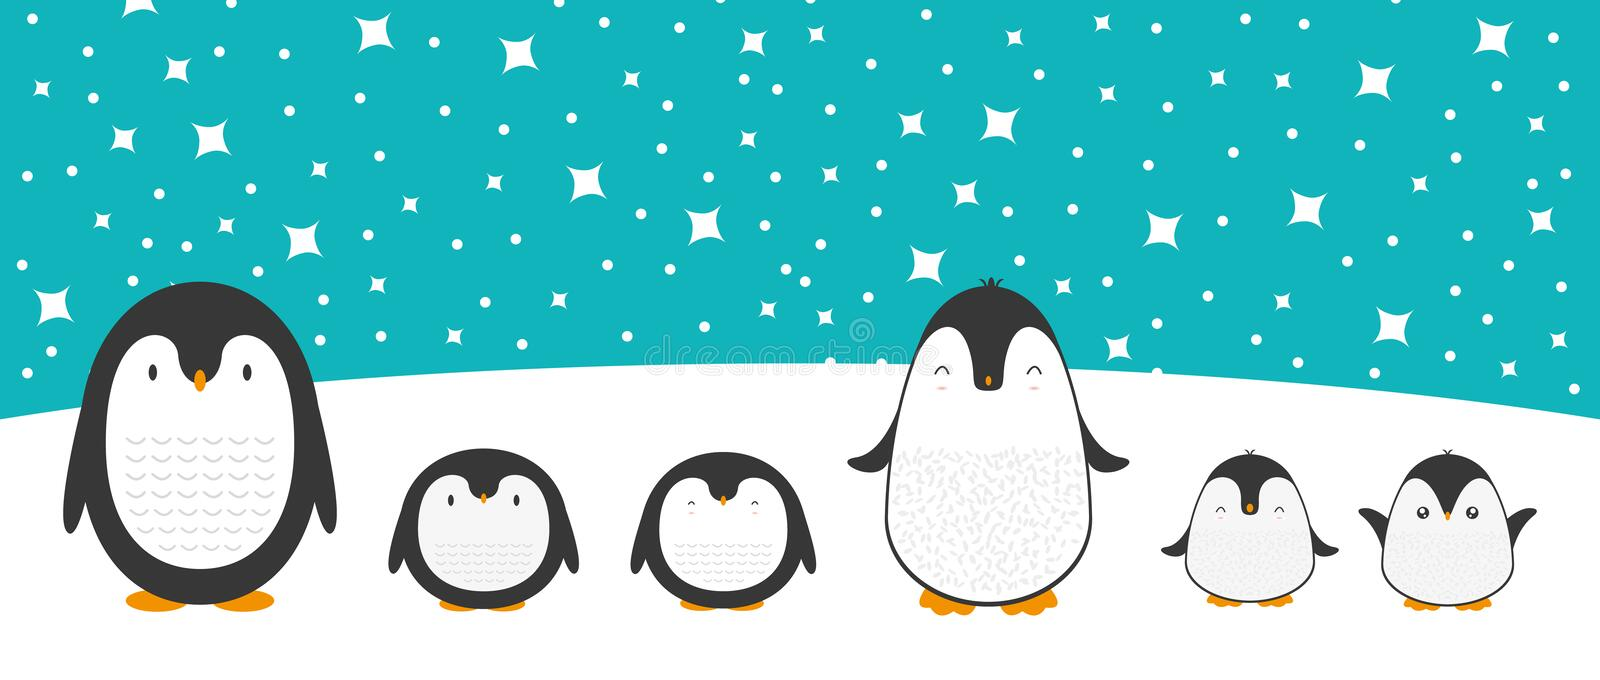 Cute Cartoon Penguin Family Greeting Card For Merry Christmas And New Year S Celebration Under Snow And Stars Doodle Vector Stock Vector Illustration Of Funny Draw 174211396